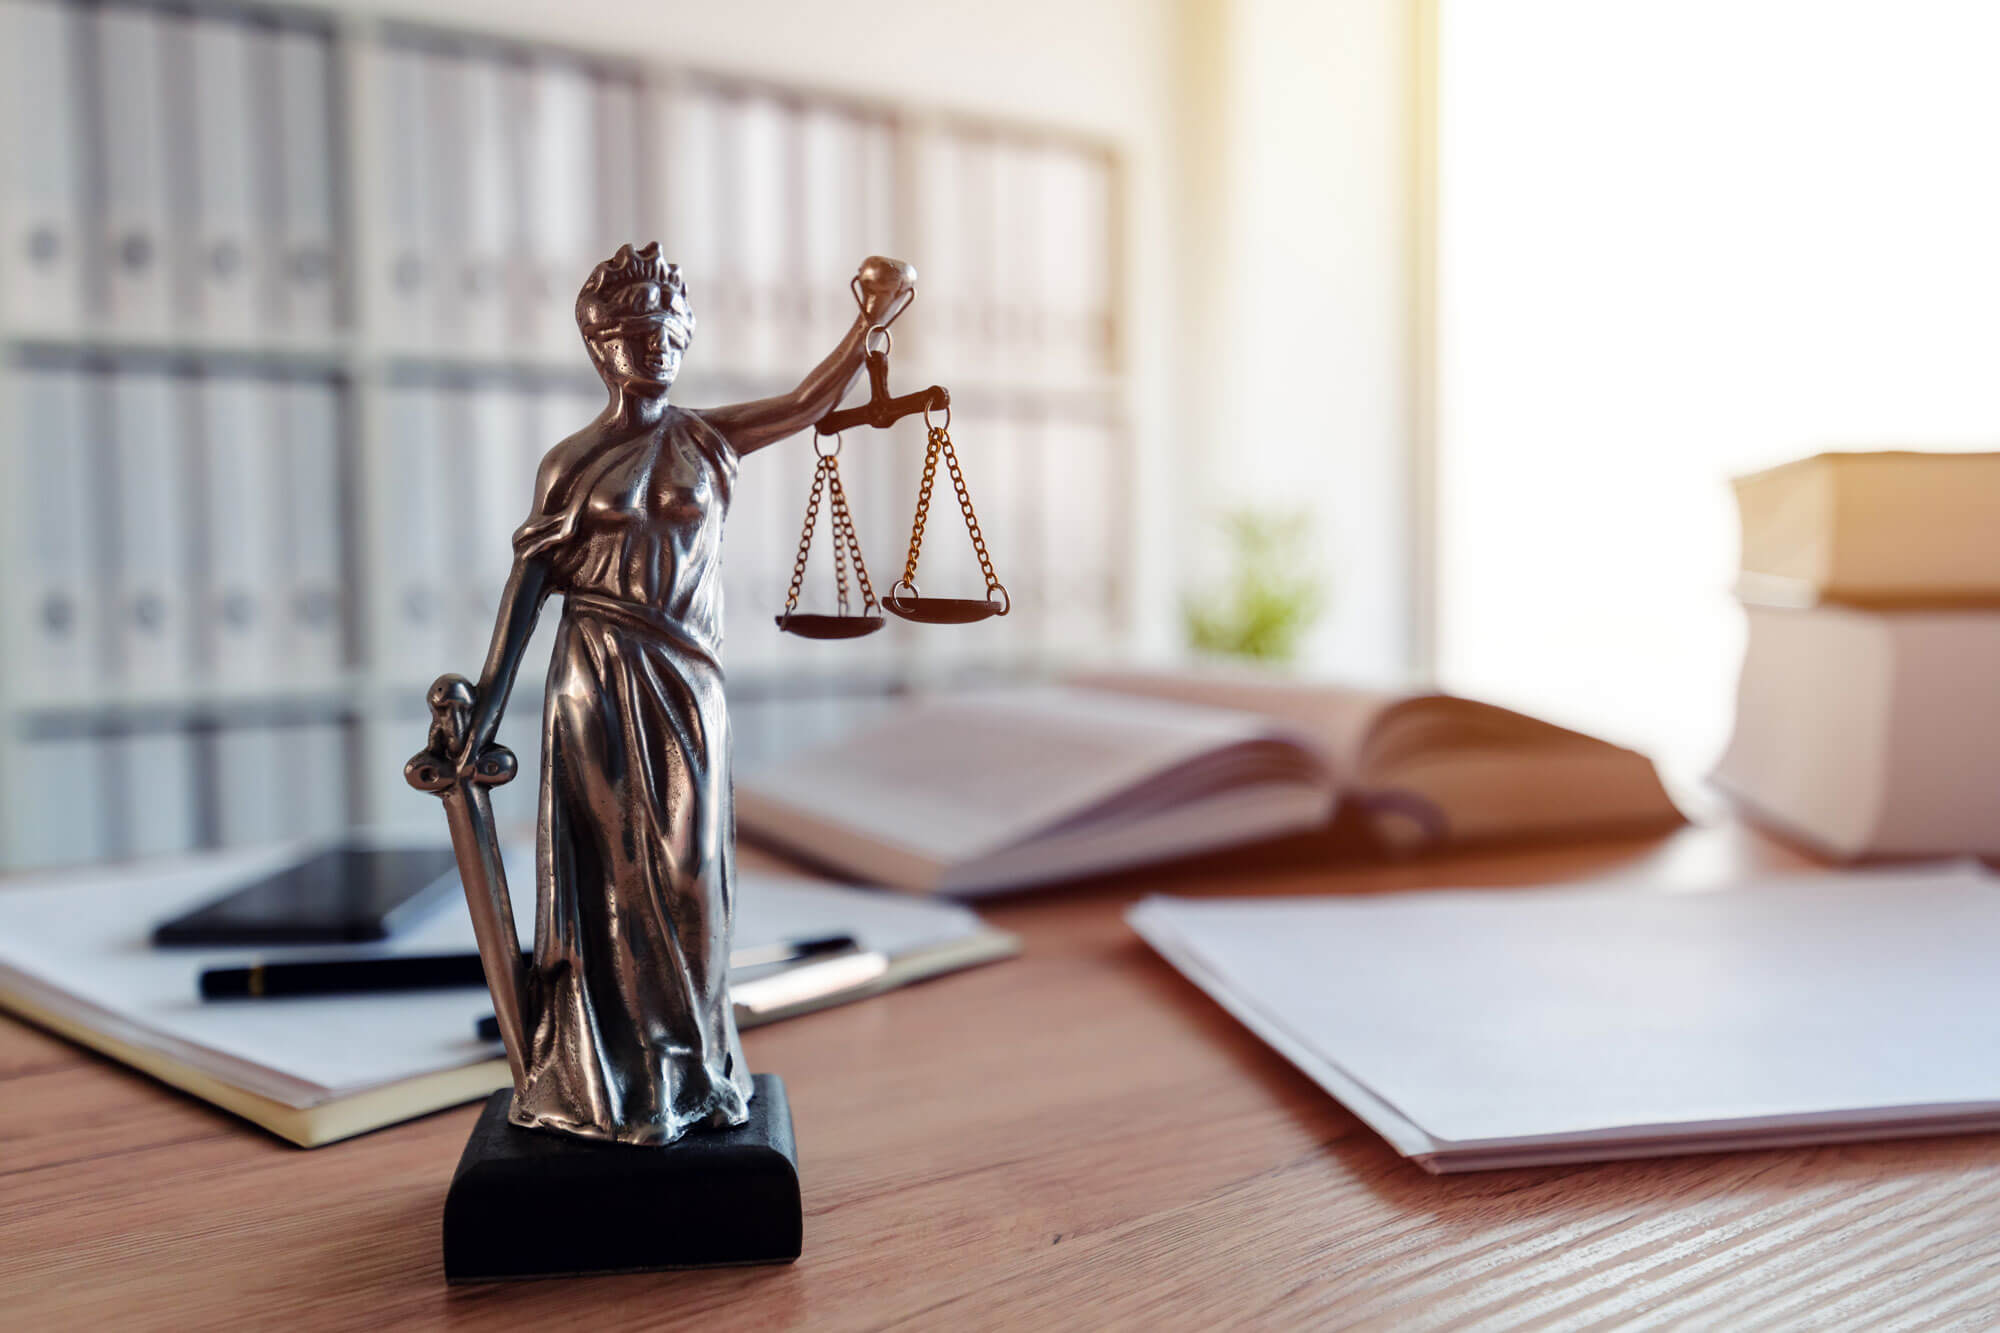 Photo of a Statue of Scales of Justice